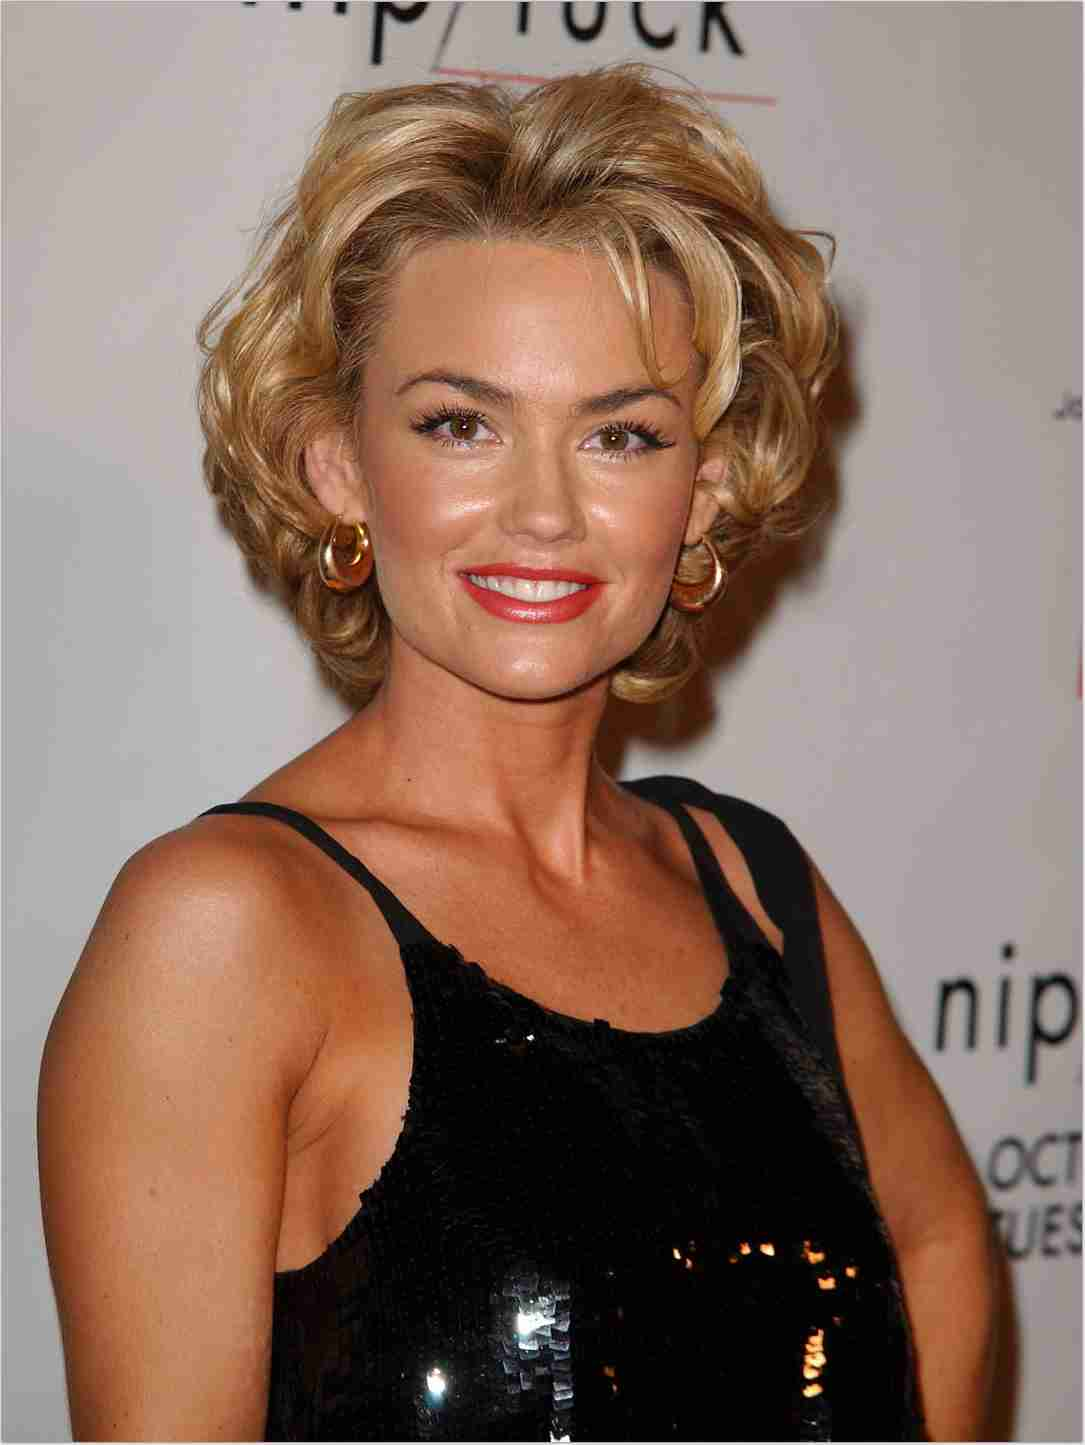 Kelly Carlson Net Worth, Bio, Height, Family, Age, Weight